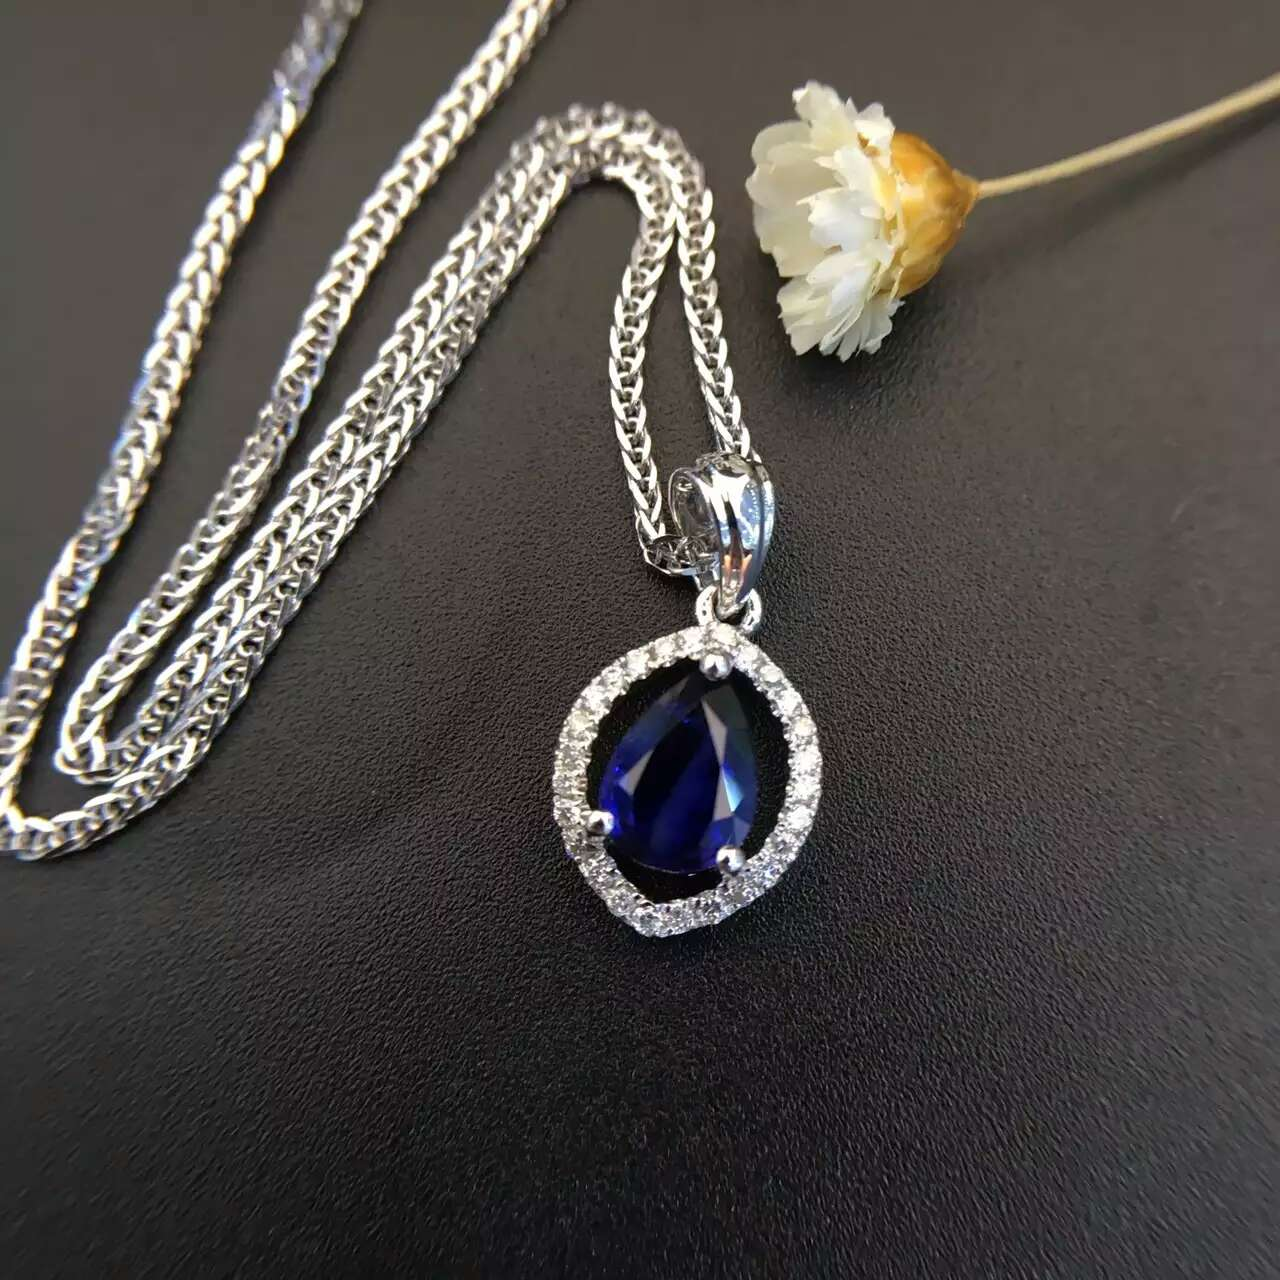 0 744ct 0 115ct 18K White Gold Natural Sapphire and Pendant font b Necklace b font